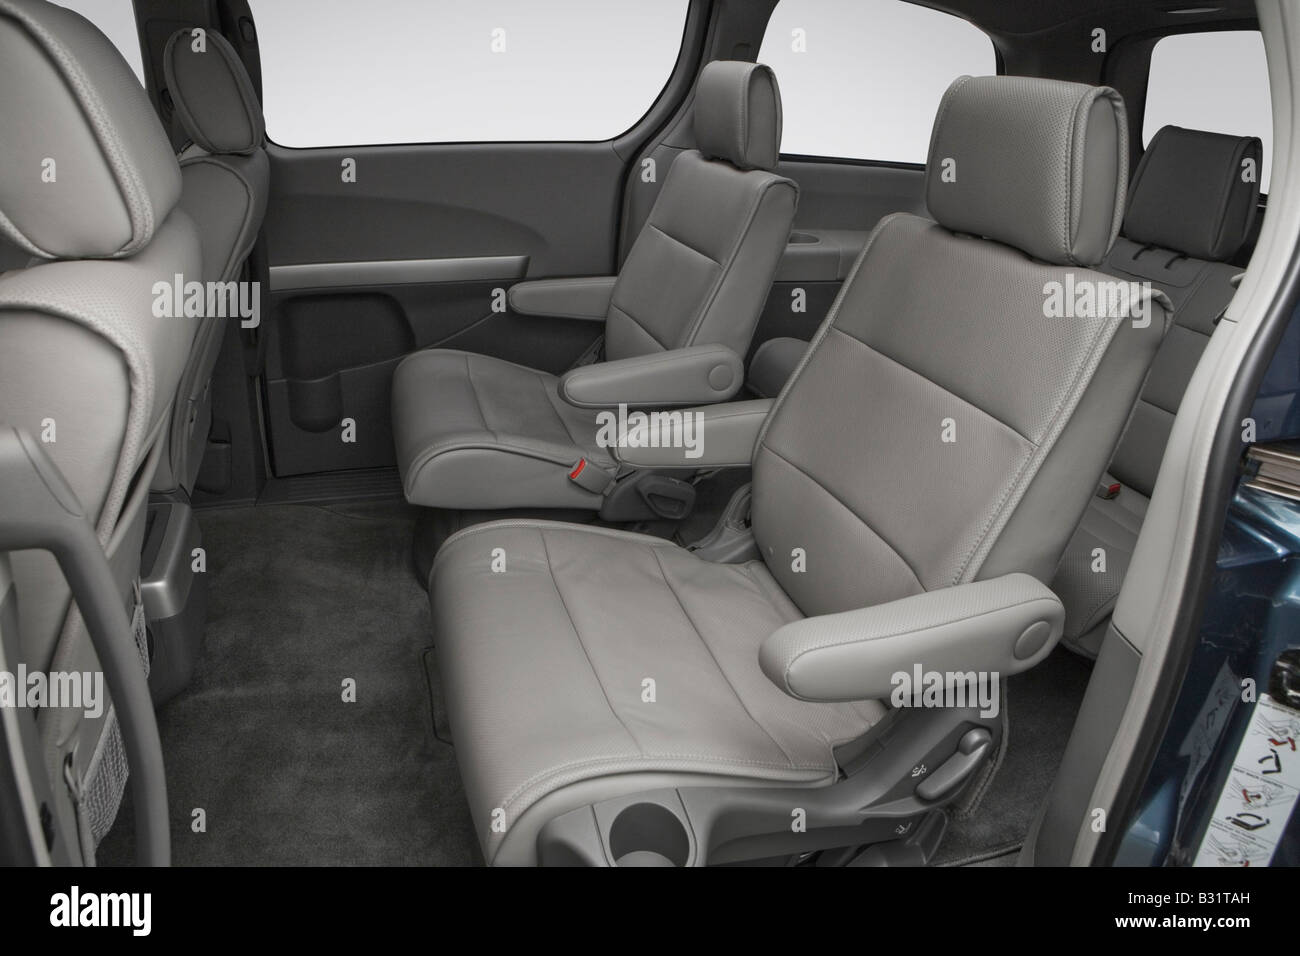 2008 nissan quest seating gallery hd cars wallpaper 2008 nissan quest 35 se in blue rear seats stock photo royalty 2008 nissan quest 35 vanachro Gallery